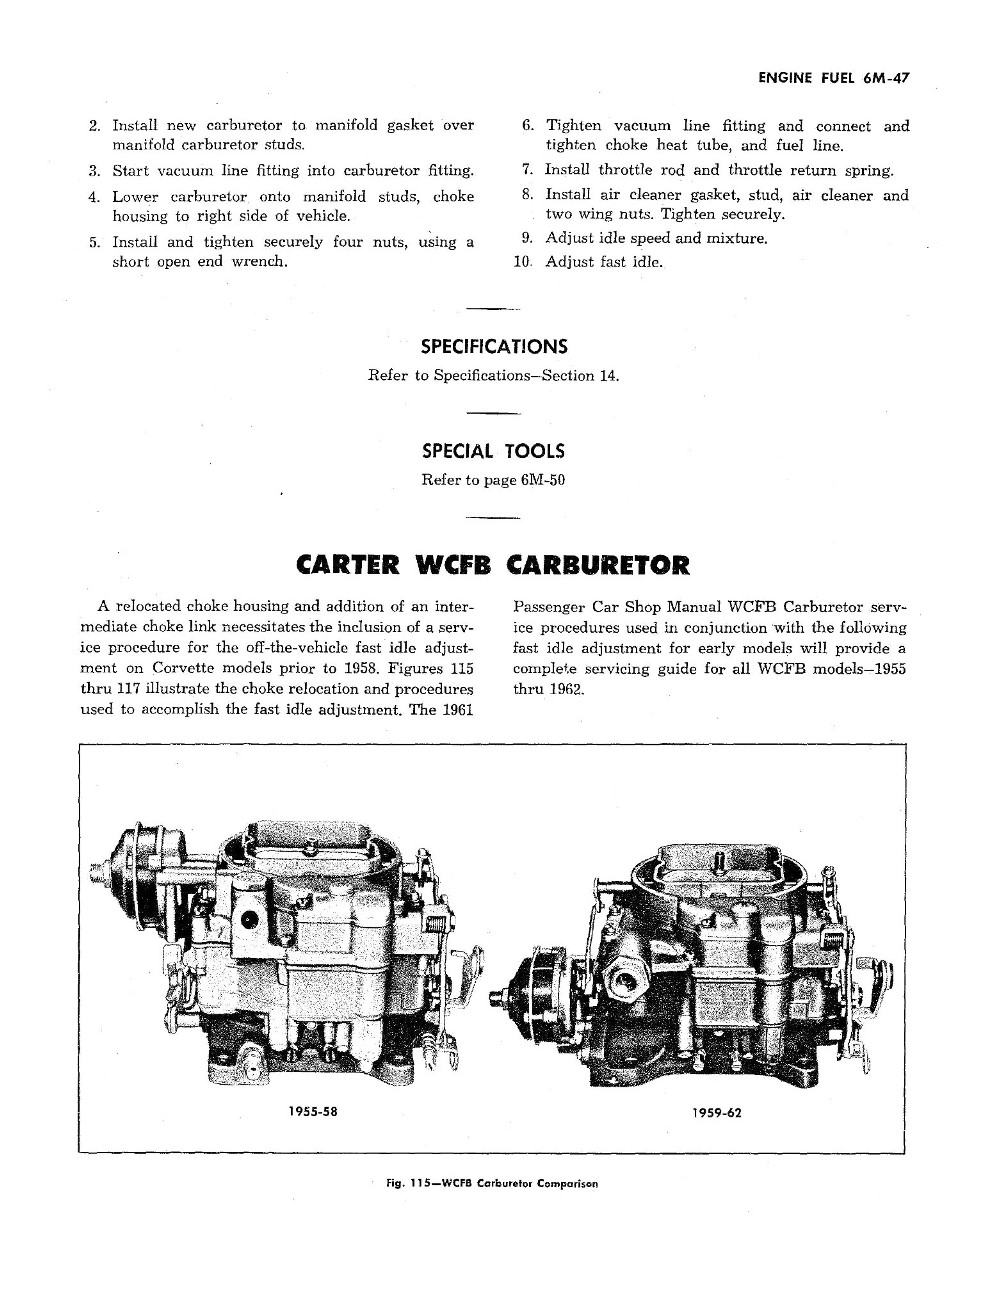 1953 - 1962 Corvette Servicing Guide ST-12